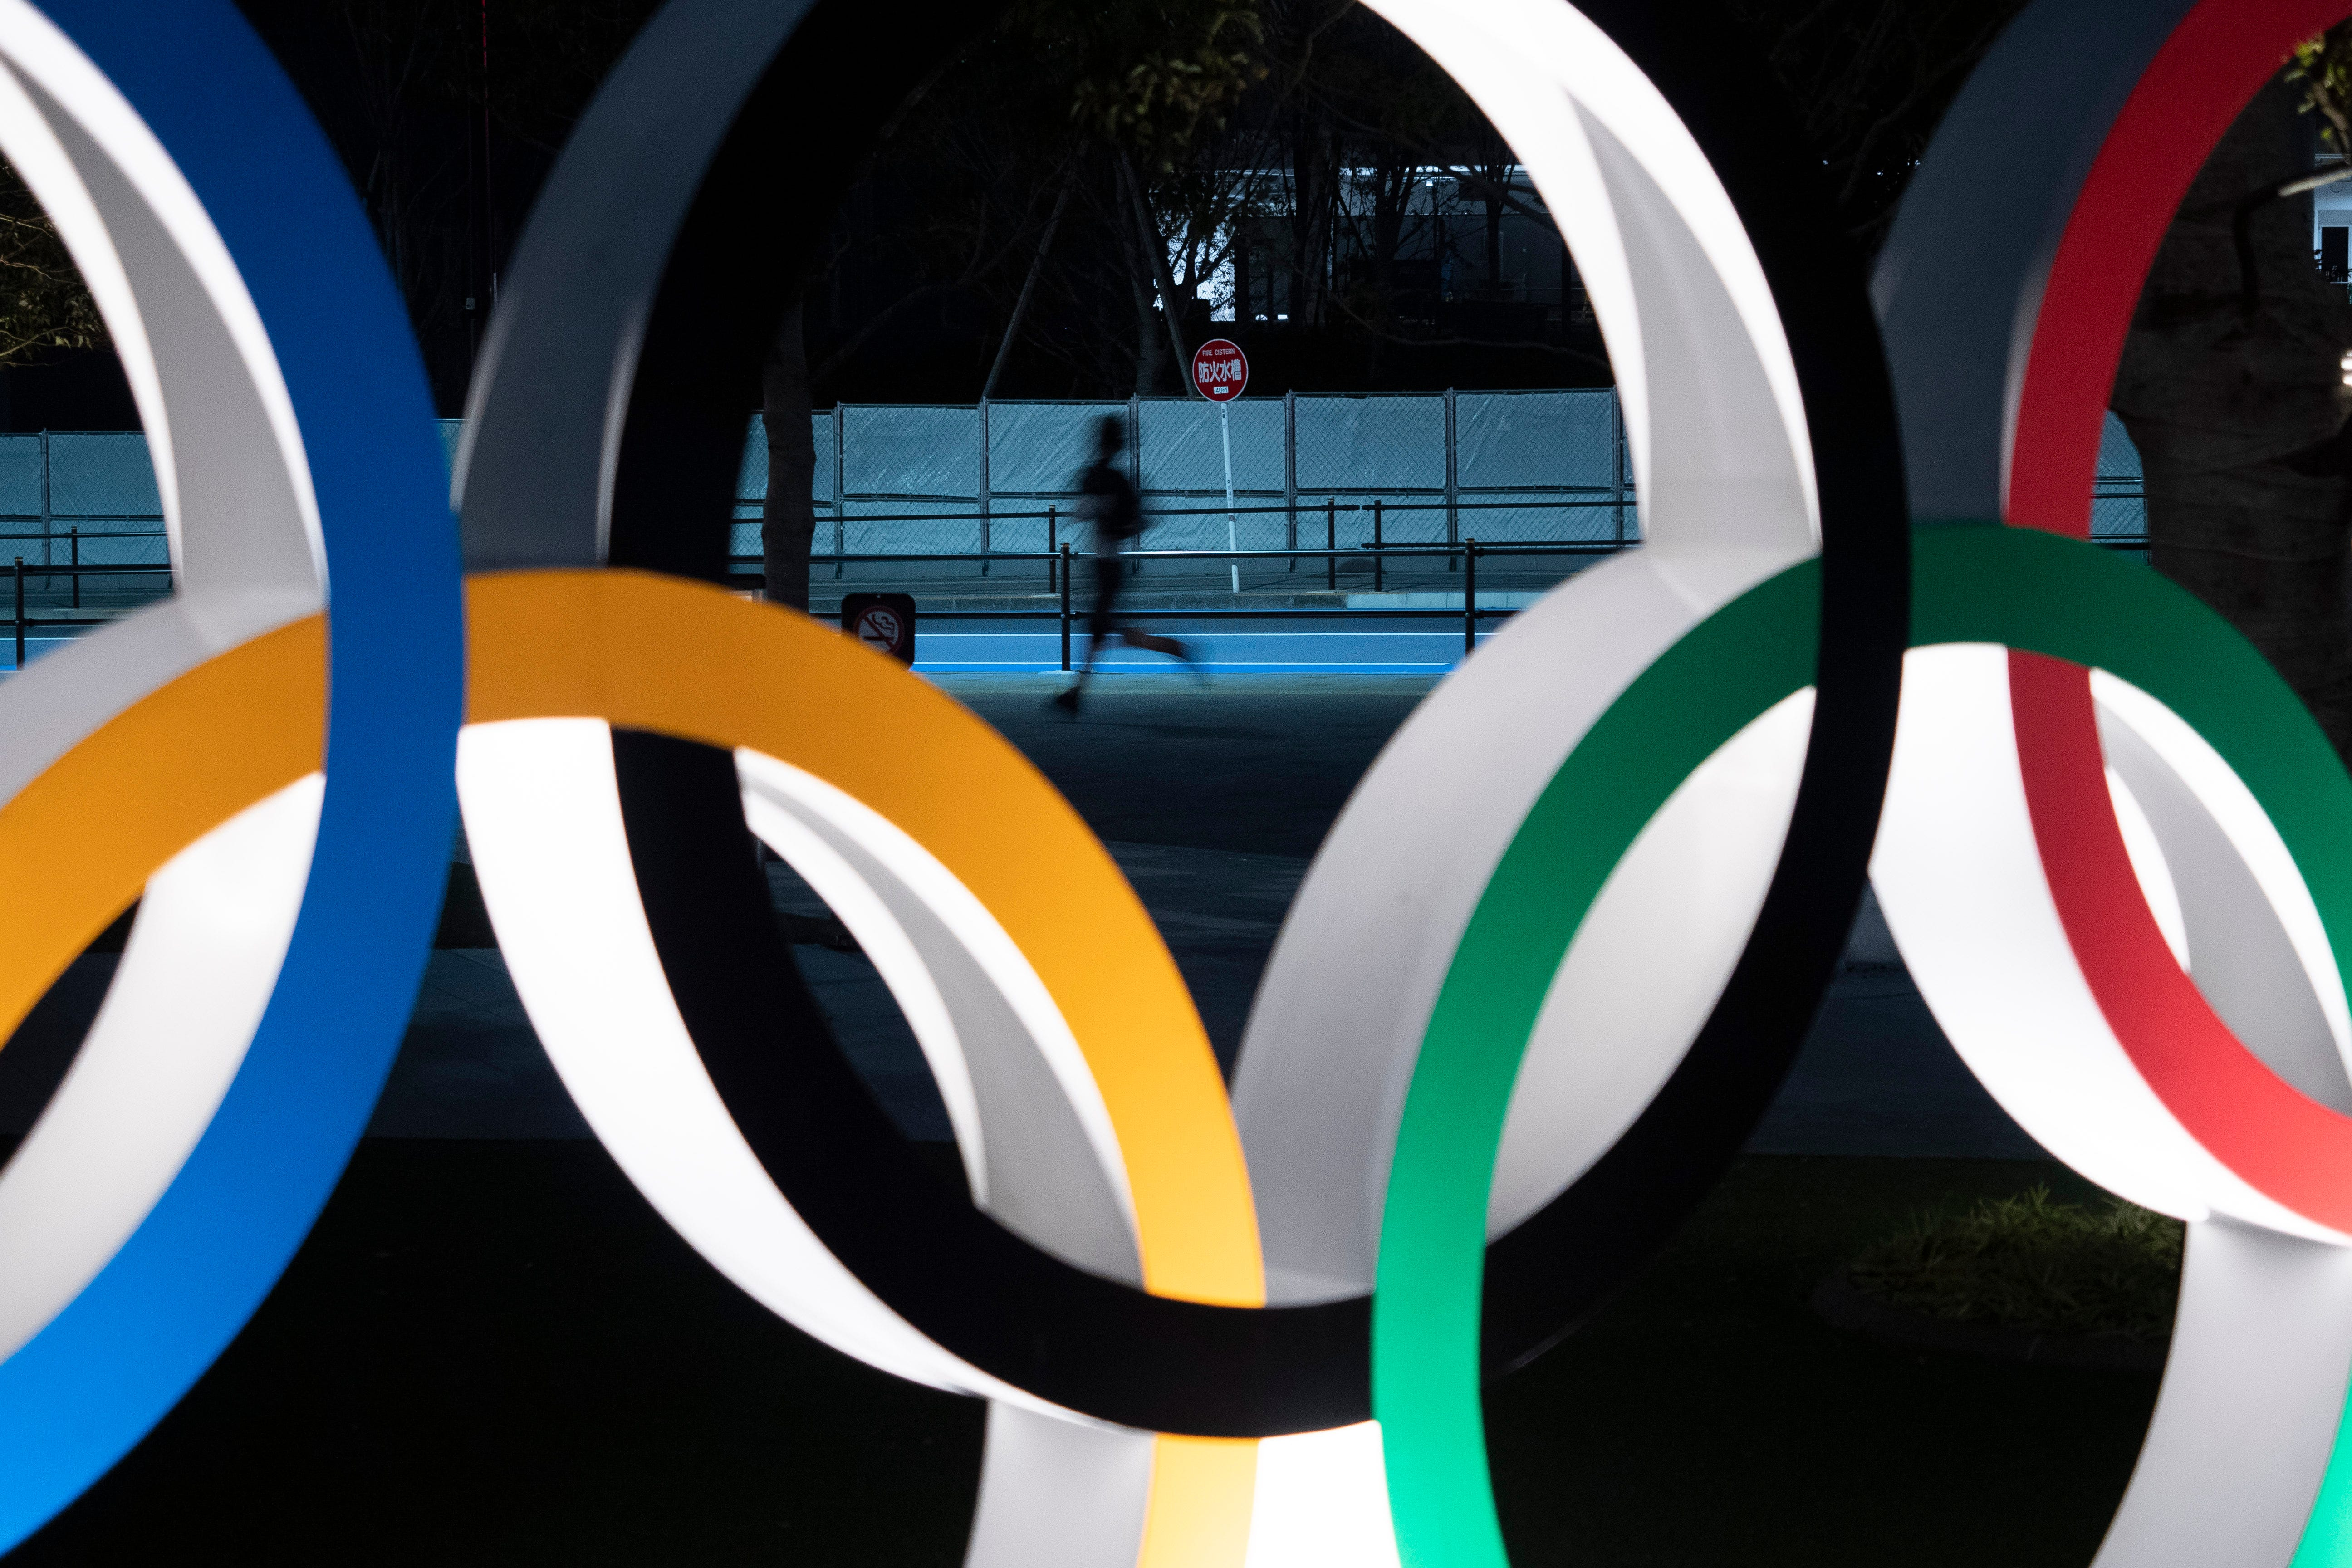 Opinion: Olympic leaders misguided in setting new date for Tokyo Games